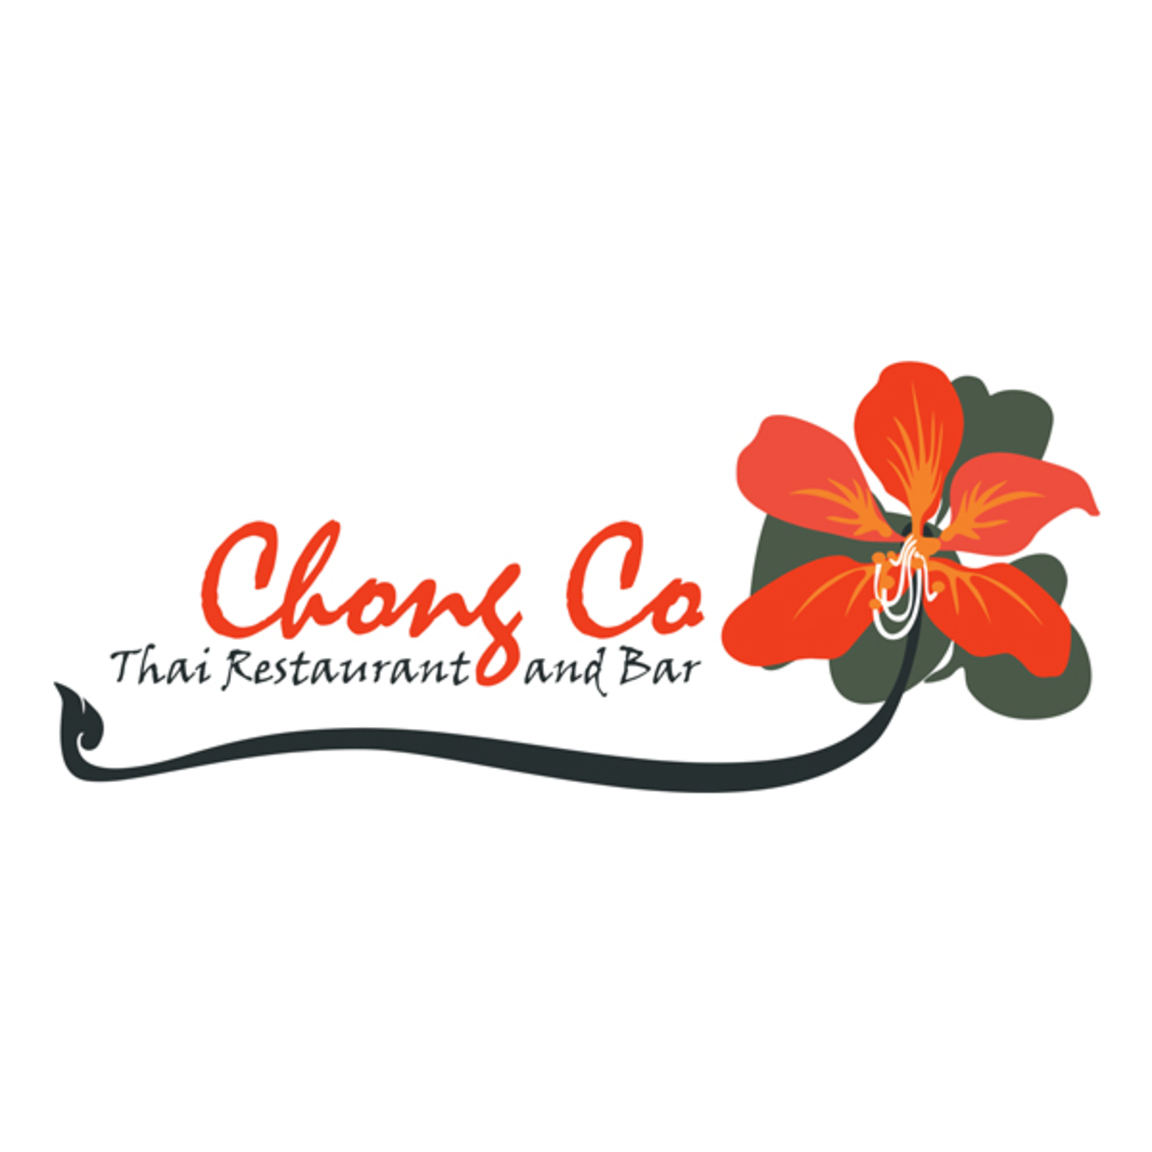 Newly Weds Foods Logo: Chong Co At Westfield Woden